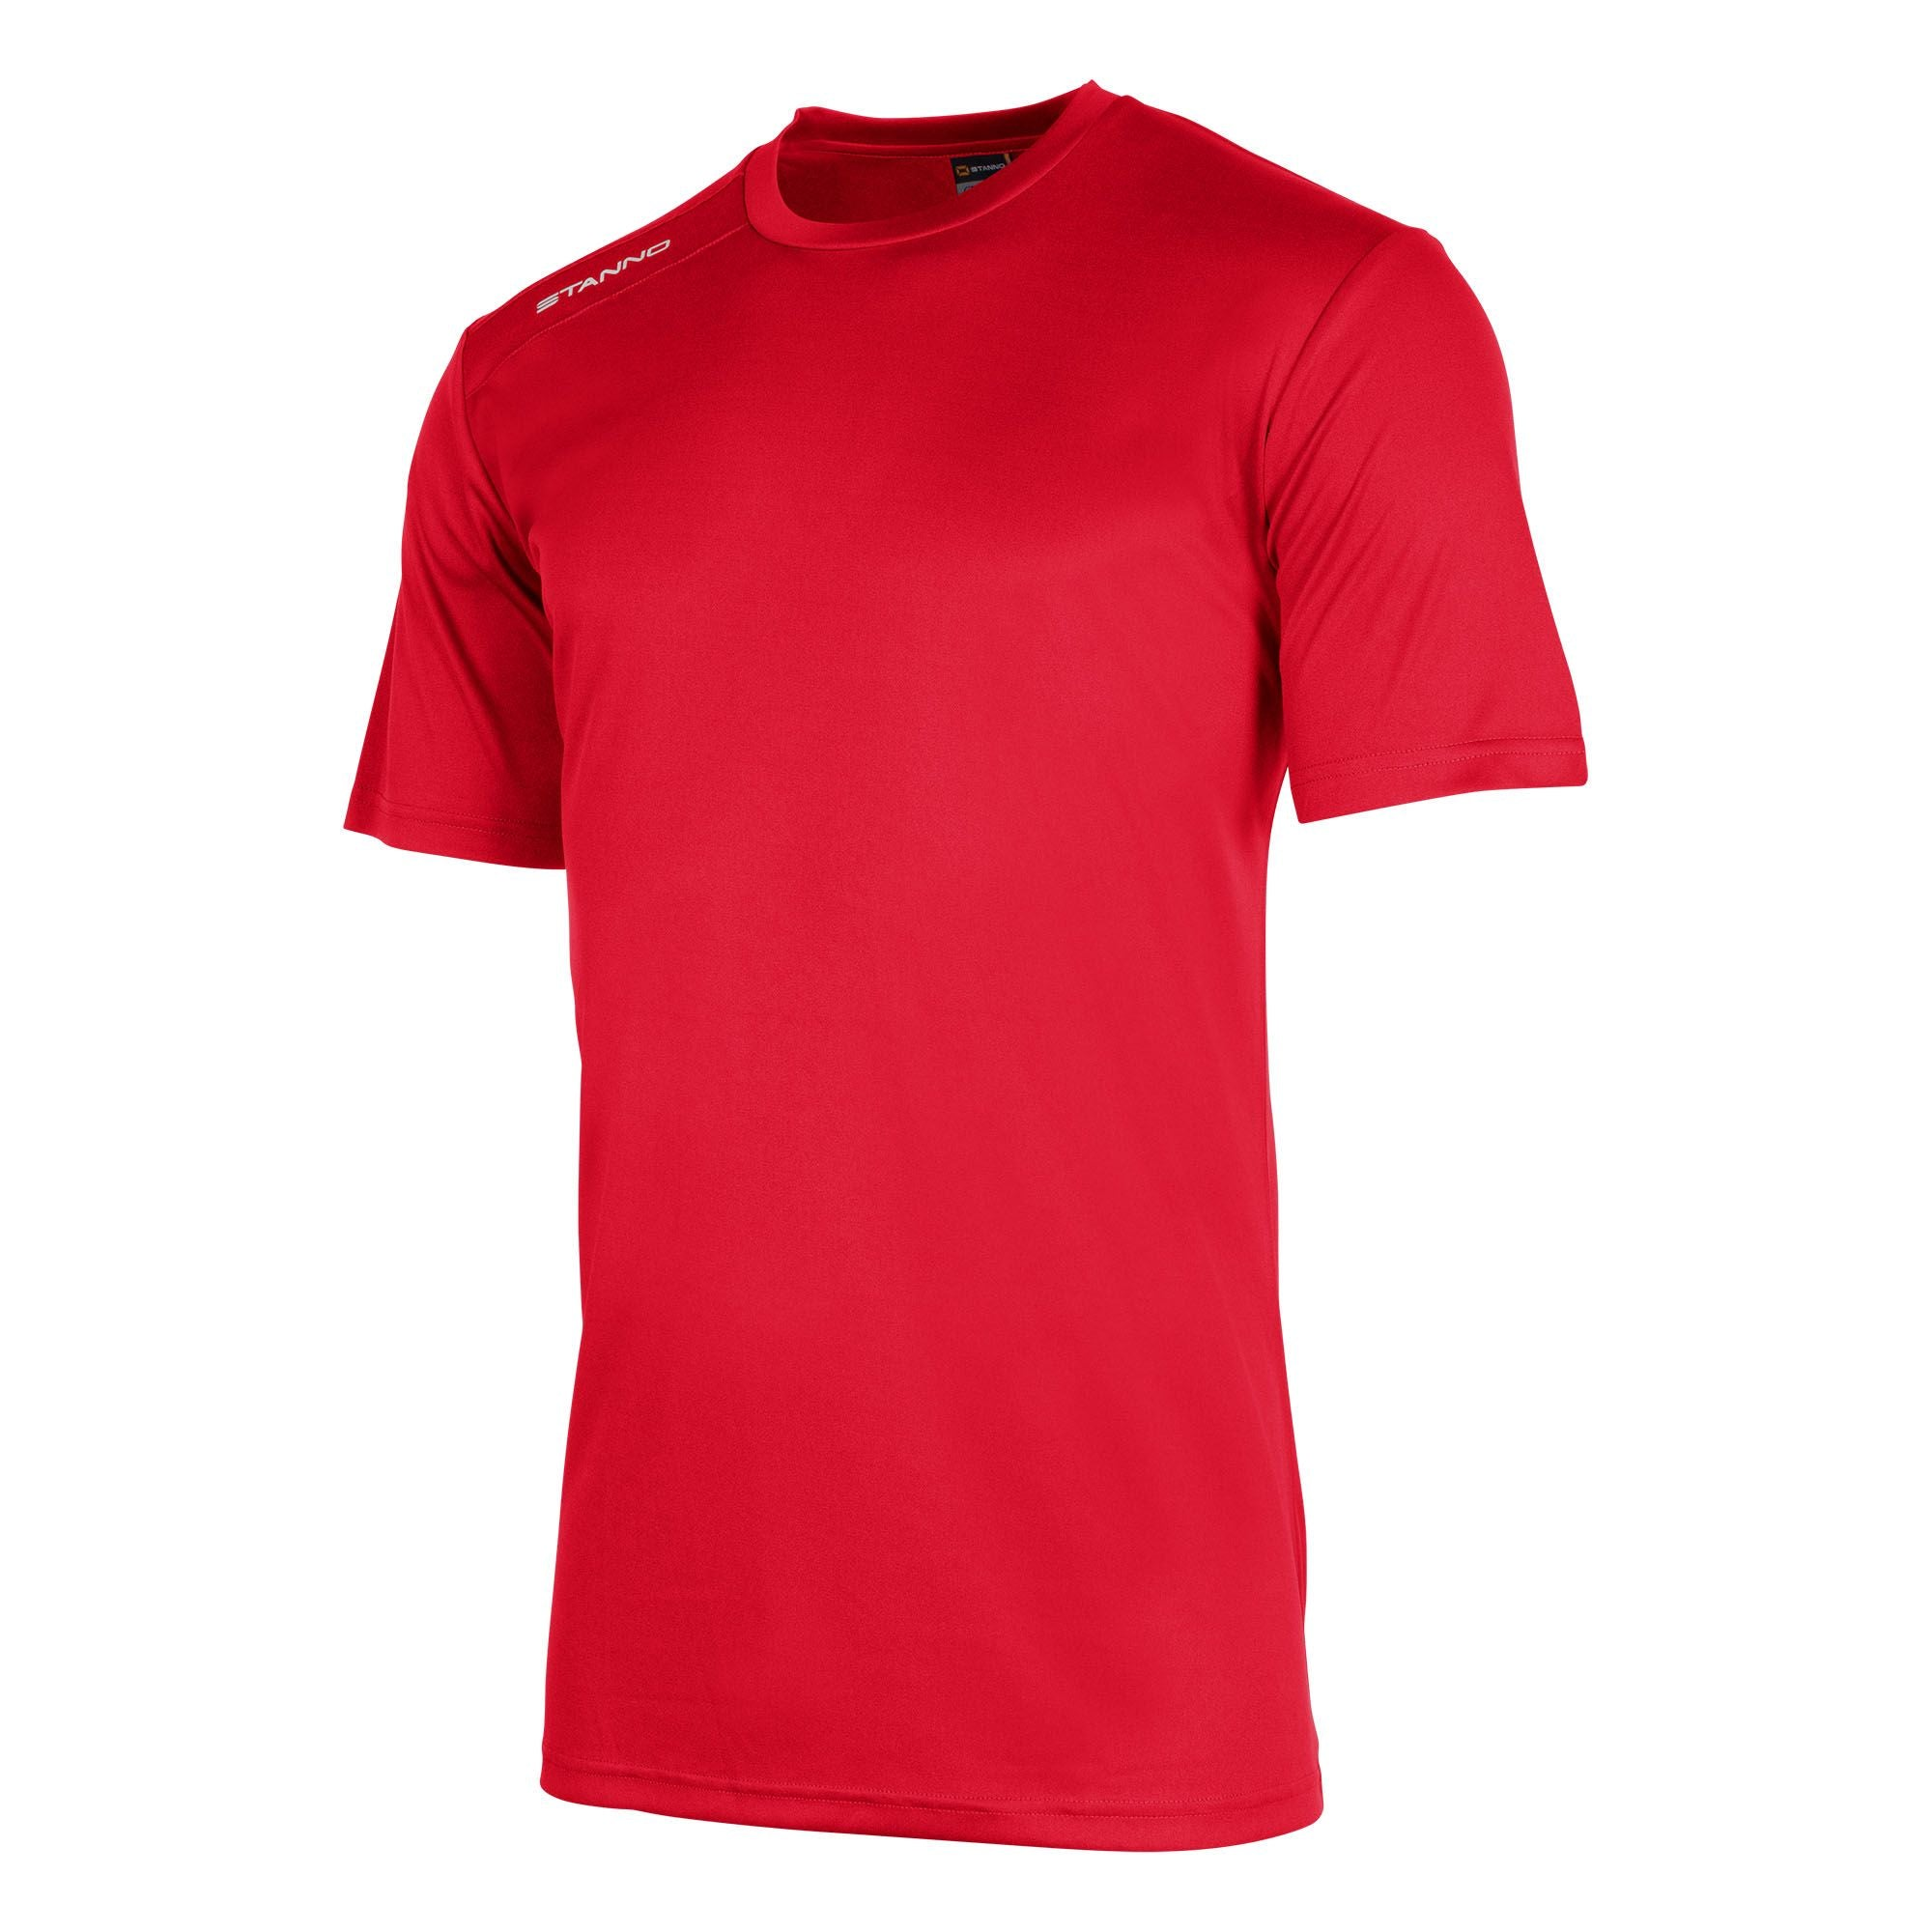 Front of Stanno field short sleeve shirt in red with white Stanno logo on right shoulder